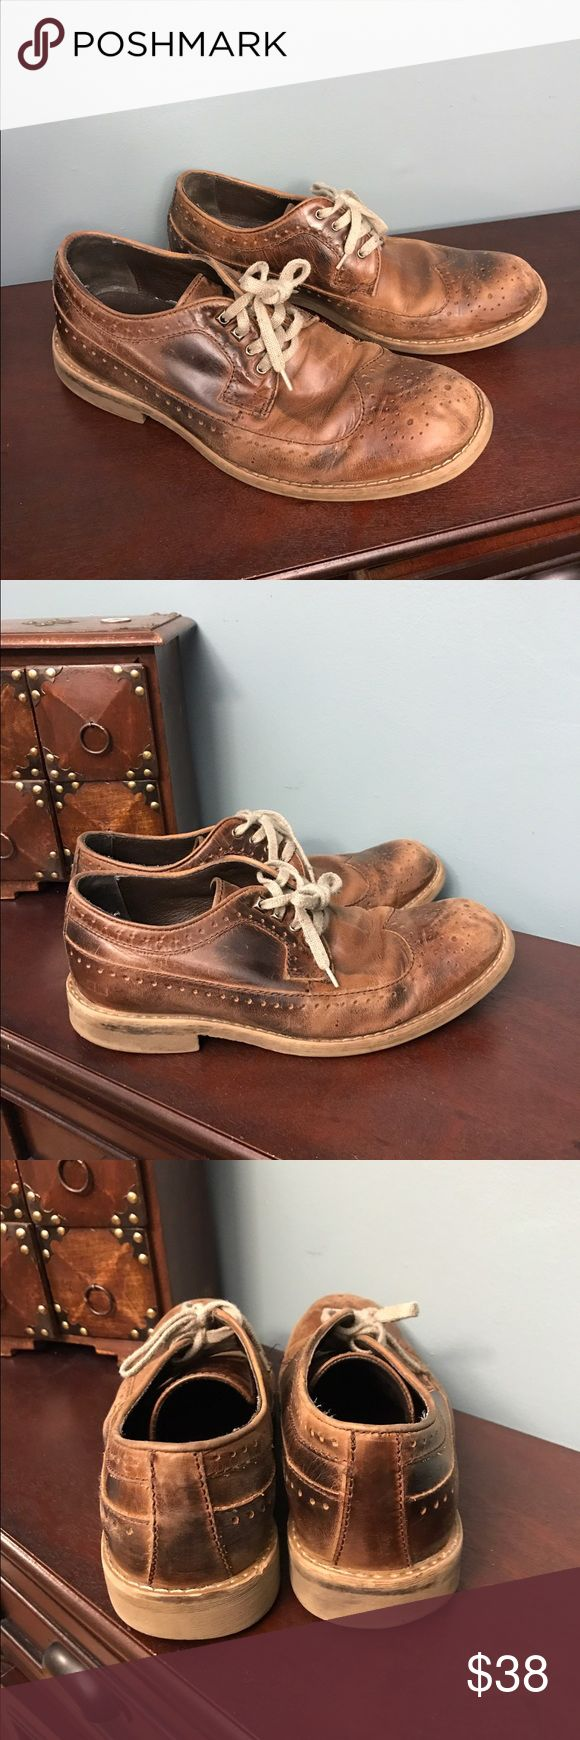 Bed Stu shoes Distressed worn leather shoes. Still smell of leather. Good quality. Lots of life left. Could use new laces. Bed Stu Shoes